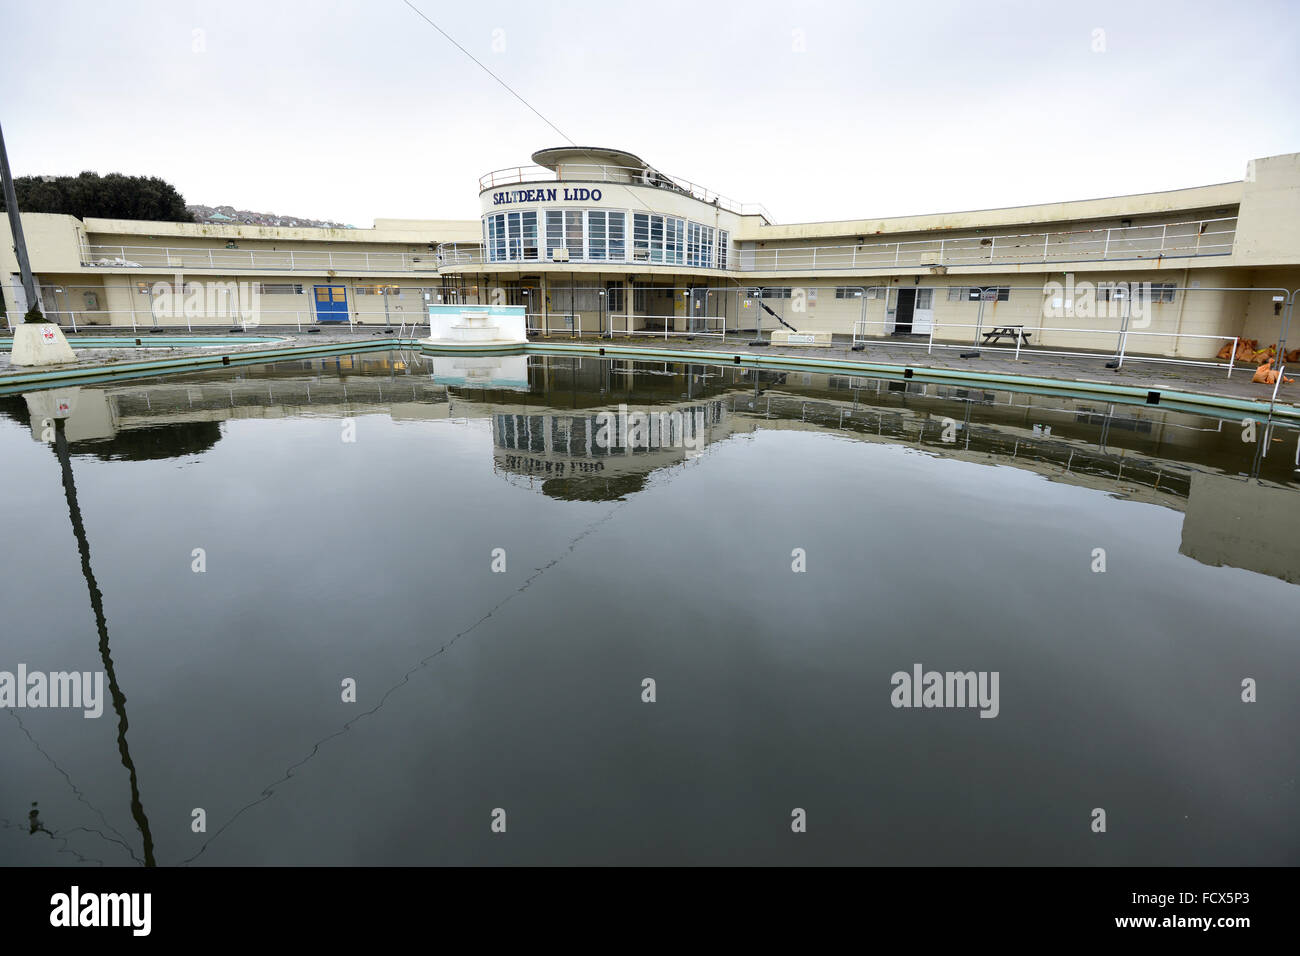 Saltdean Lido East Sussex Uk Rundown Art Deco Open Air Swimming Stock Photo Royalty Free